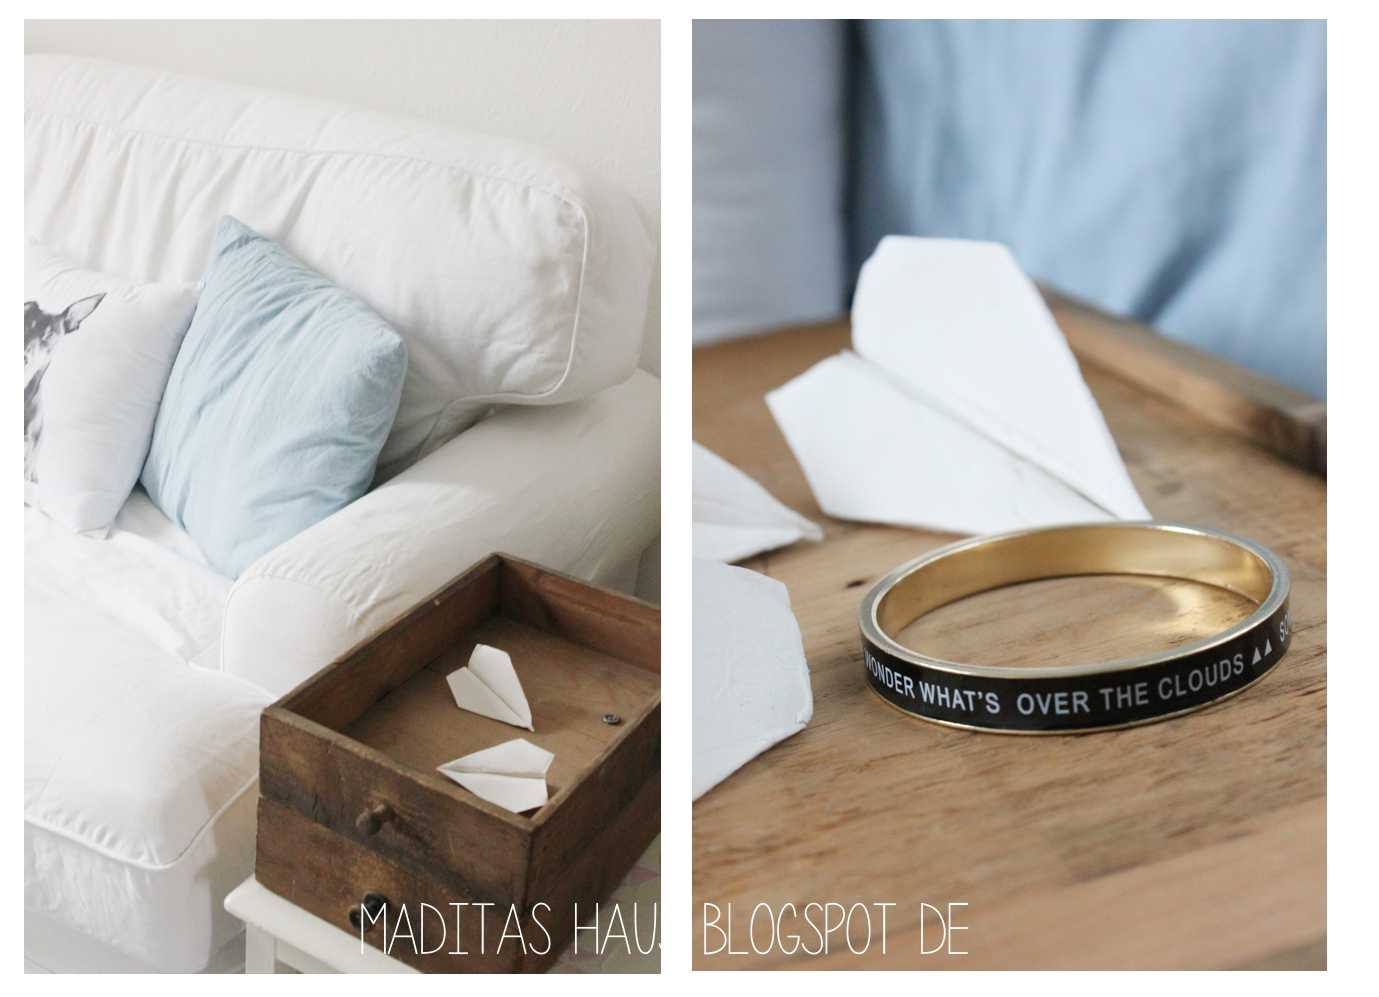 diy paper plane aus modelliermasse maditas haus lifestyle und interior blog. Black Bedroom Furniture Sets. Home Design Ideas